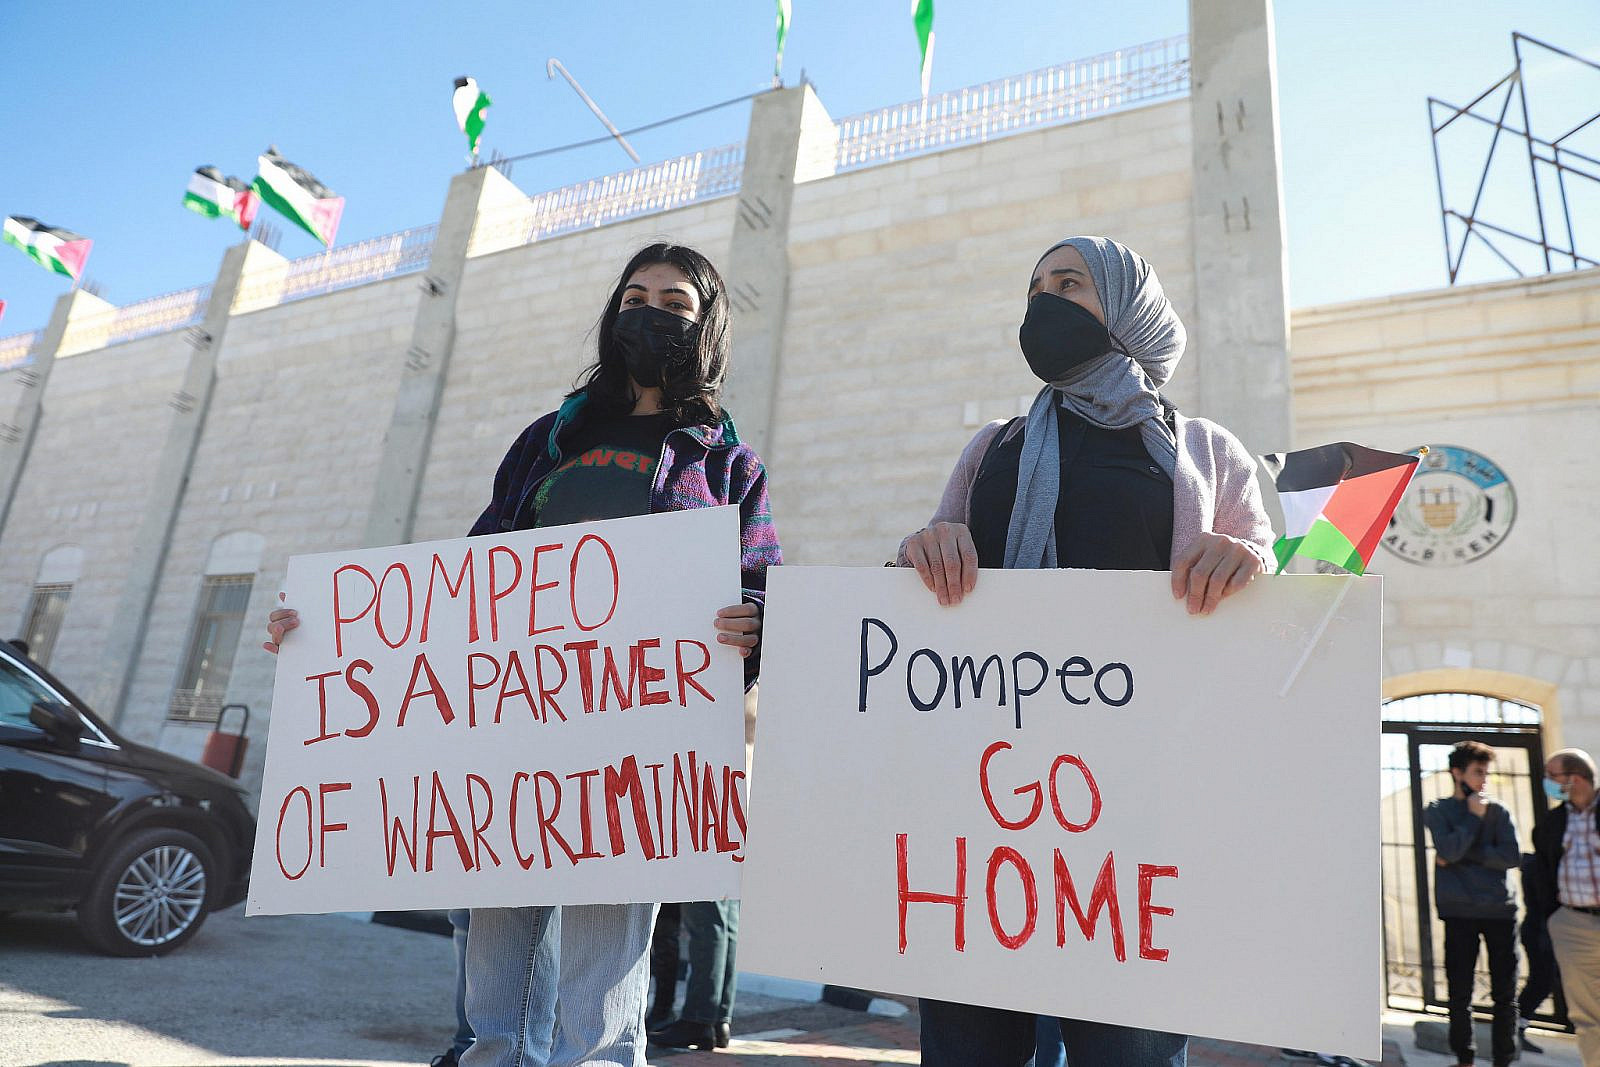 Palestinians protest against the visit of U.S. Secretary of State Mike Pompeo to the Jewish settlement of Psagot near the West Bank city of Al-Bireh, November 18, 2020. (Flash90)